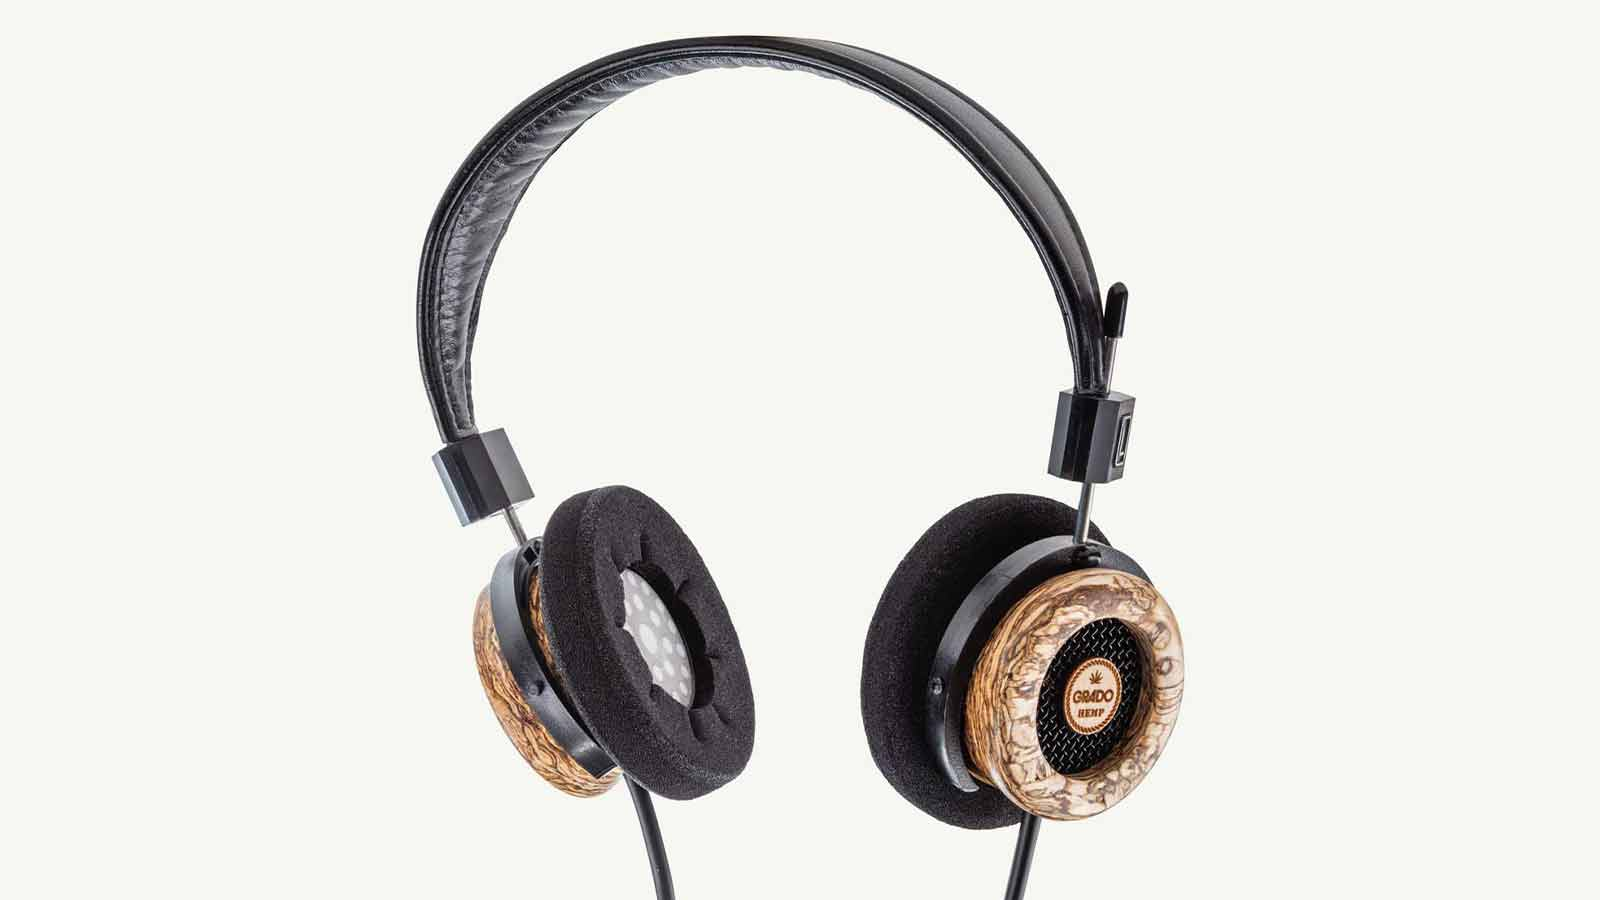 Grado Hemp Headphone Limited Edition